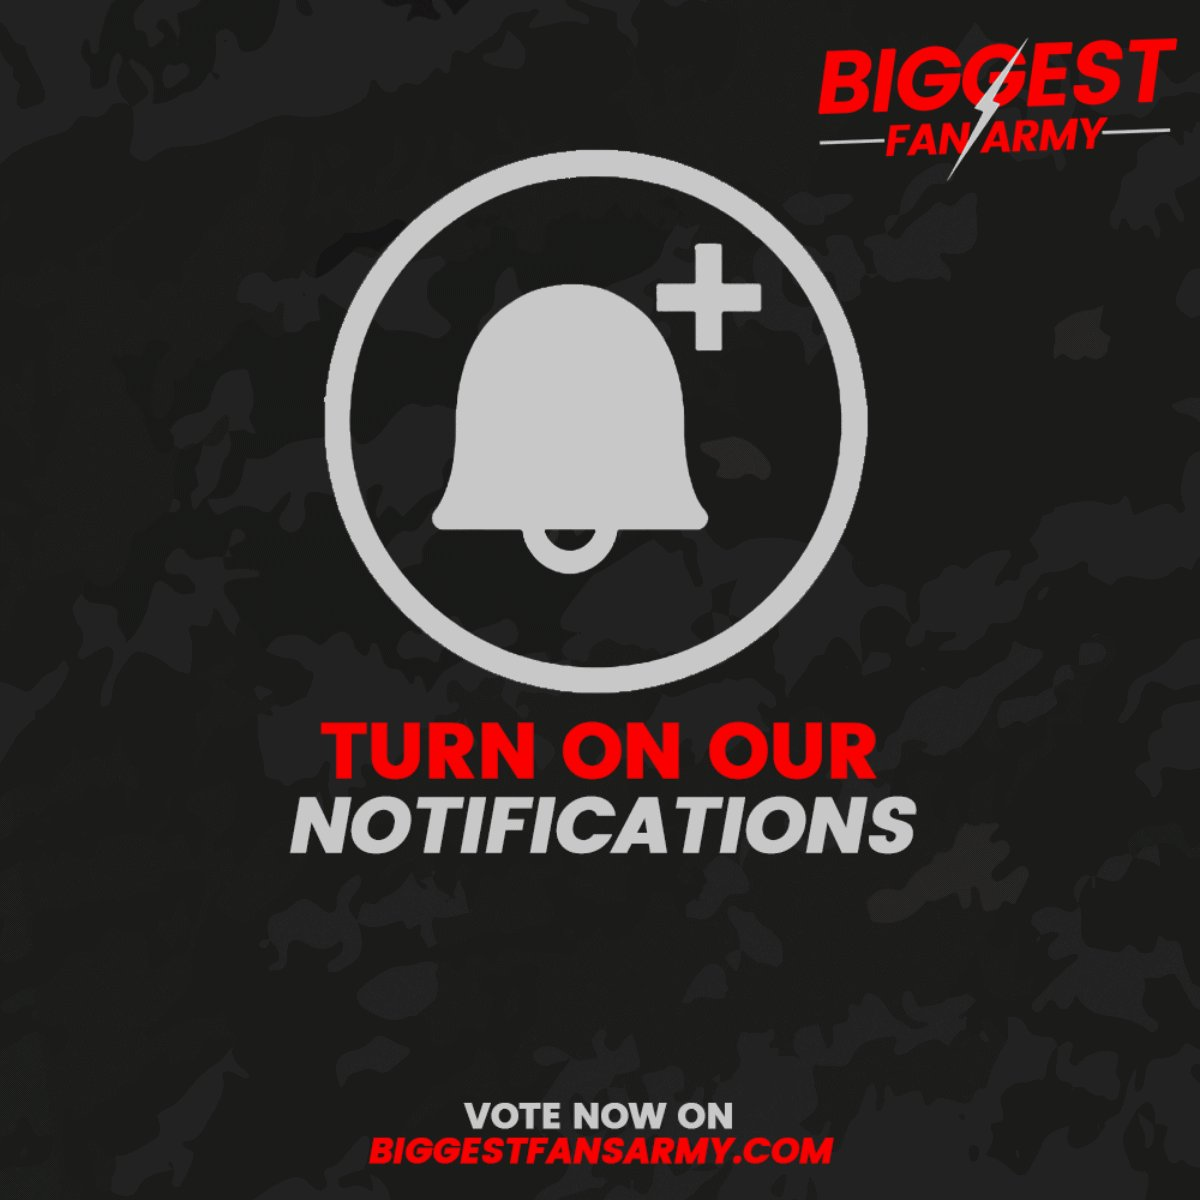 The 2019 #BiggestFansArmy is here! TURN ON OUR NOTIFICATIONS for updates of votes.  ⭐️ RT & Vote now on http://BiggestFansArmy.com